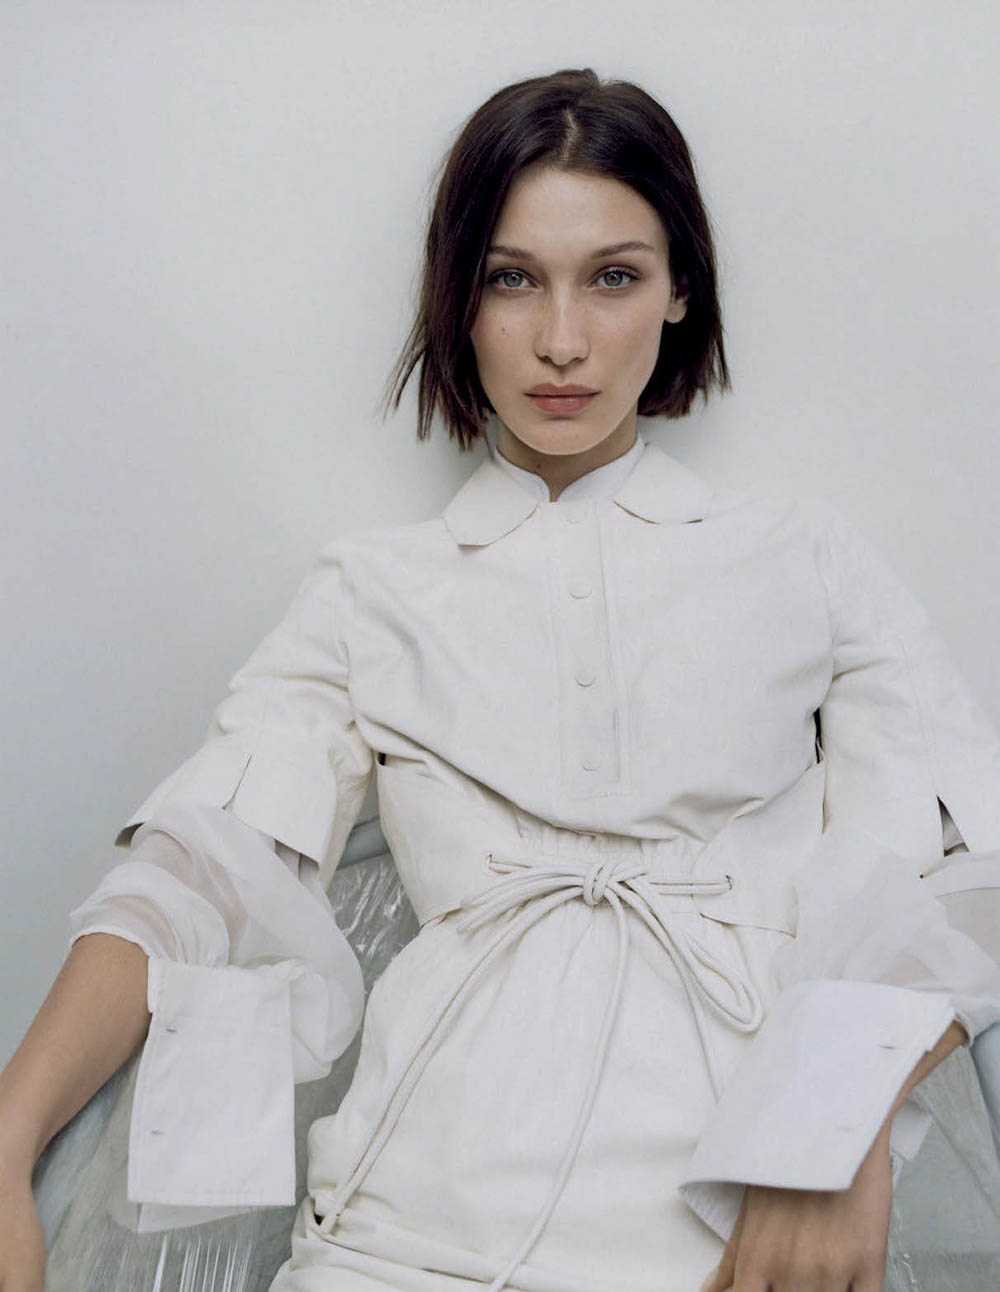 Bella Hadid by Zoe Ghertner for Vogue Italia March 2020